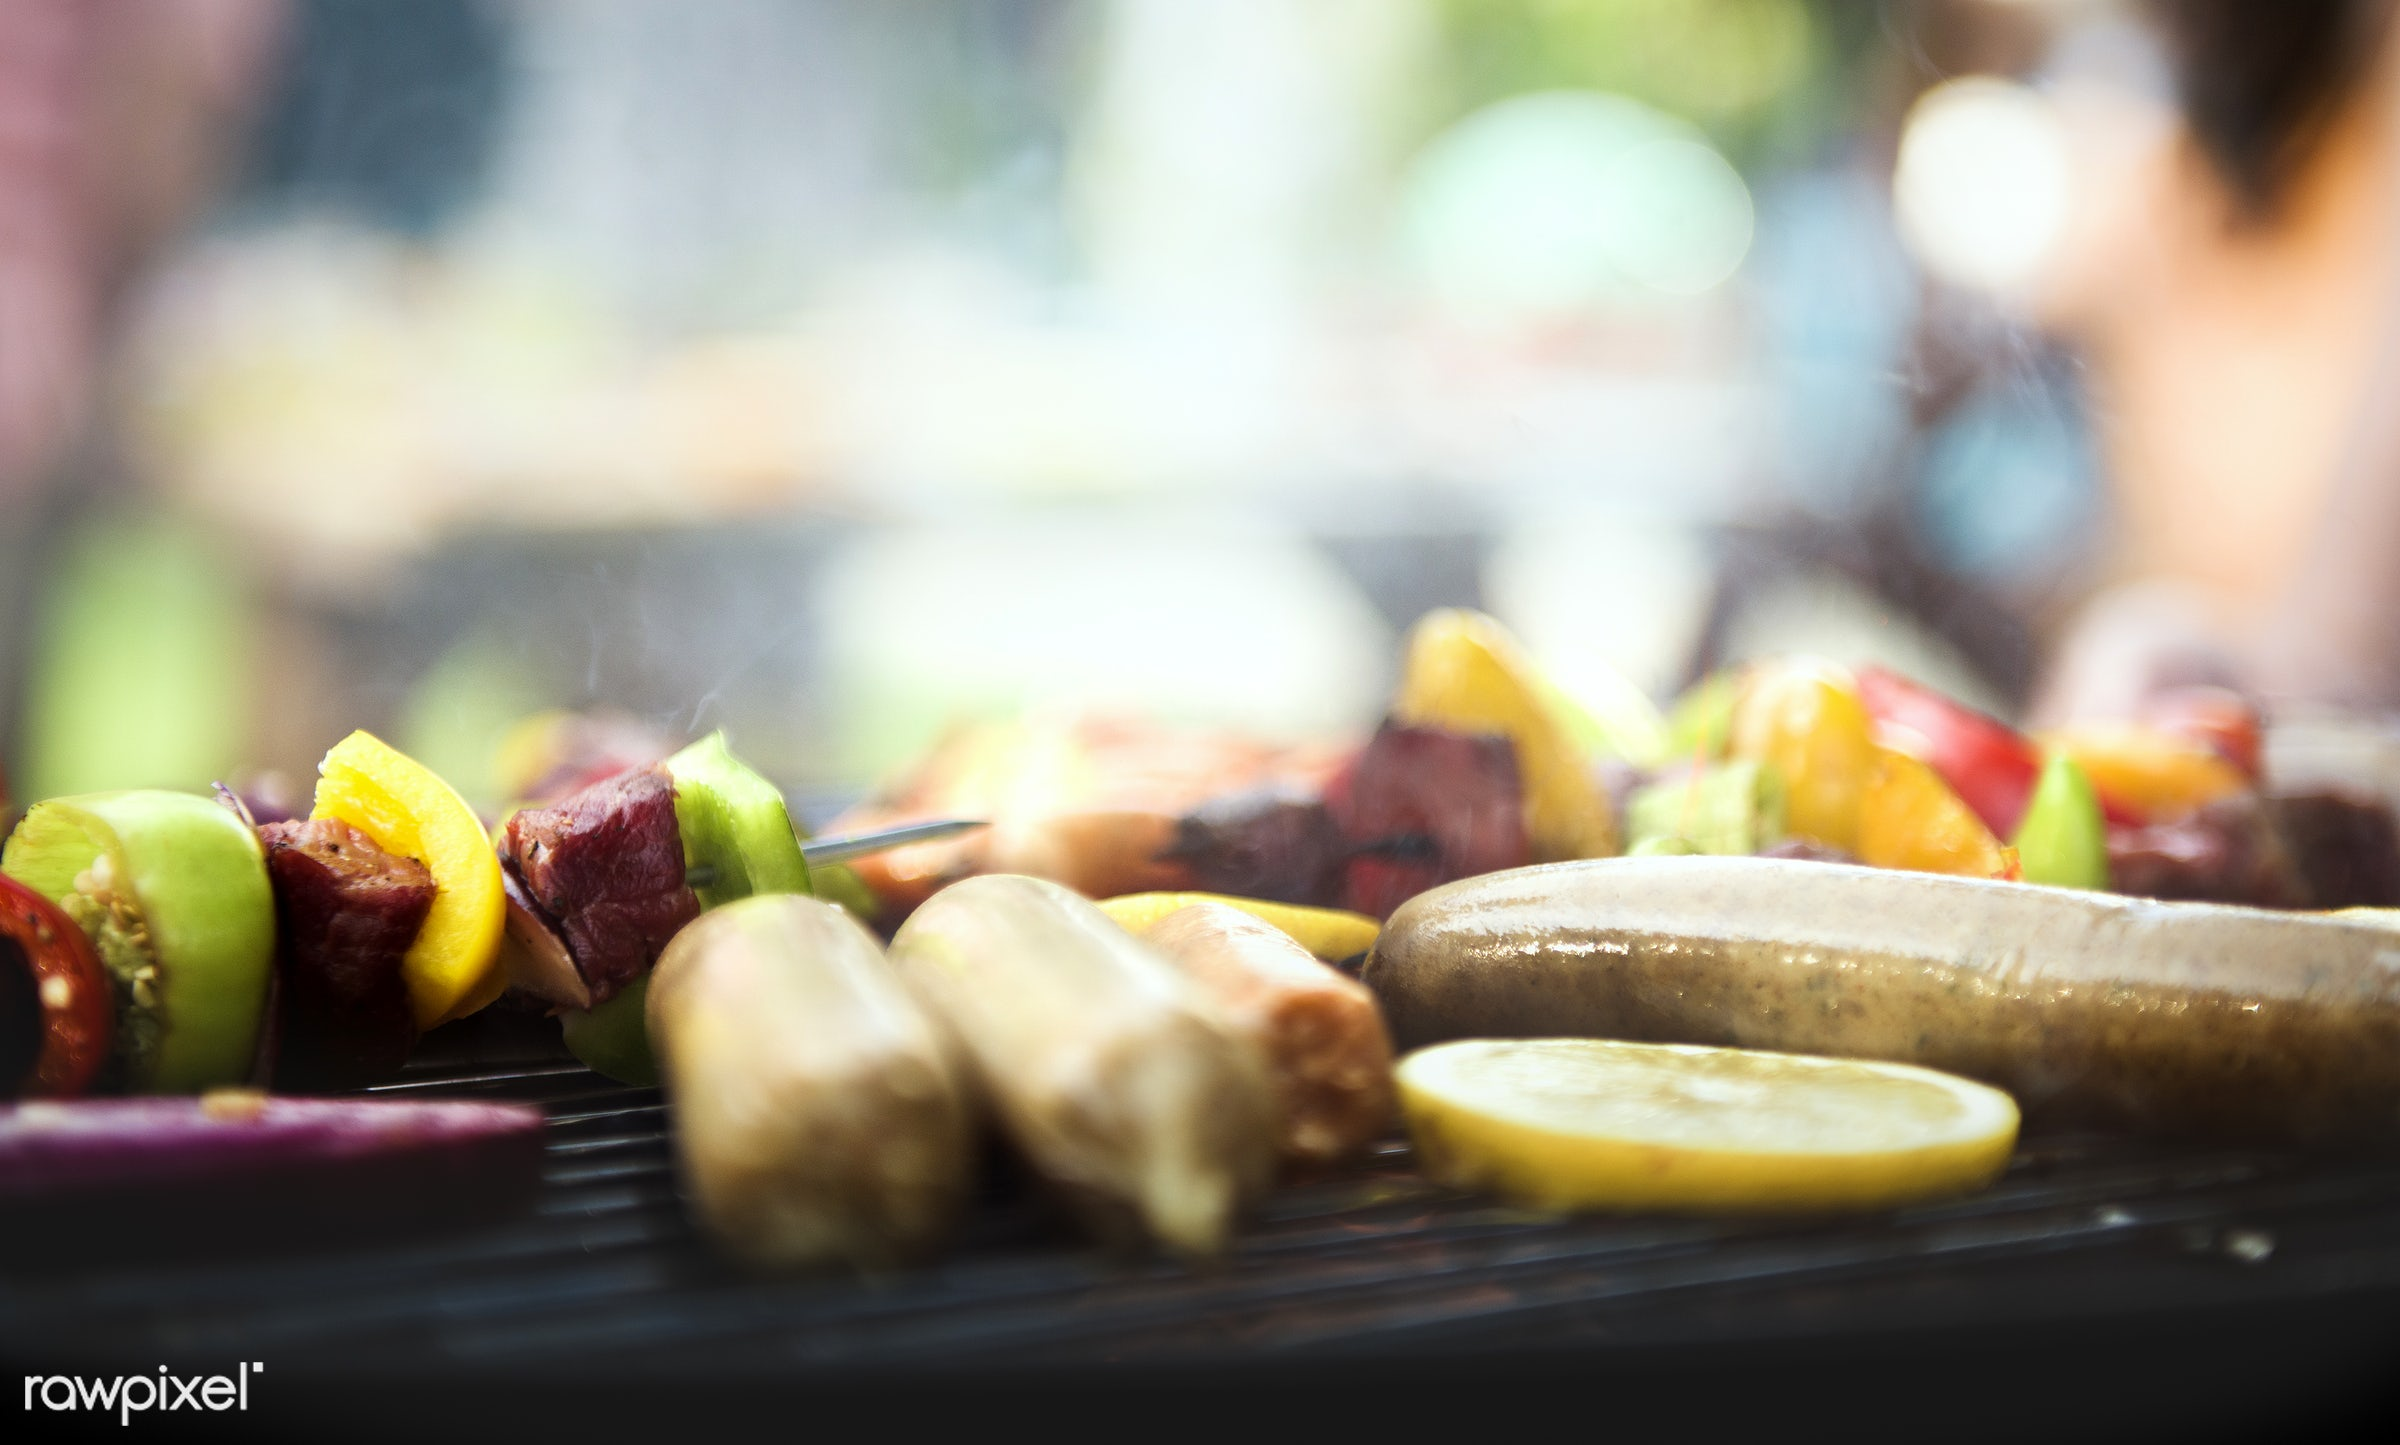 bbq, barbecue, cooking, corns, diverse, feet, food, fresh, friends, grass, grill, group, hands, holiday, homemade, leisure,...